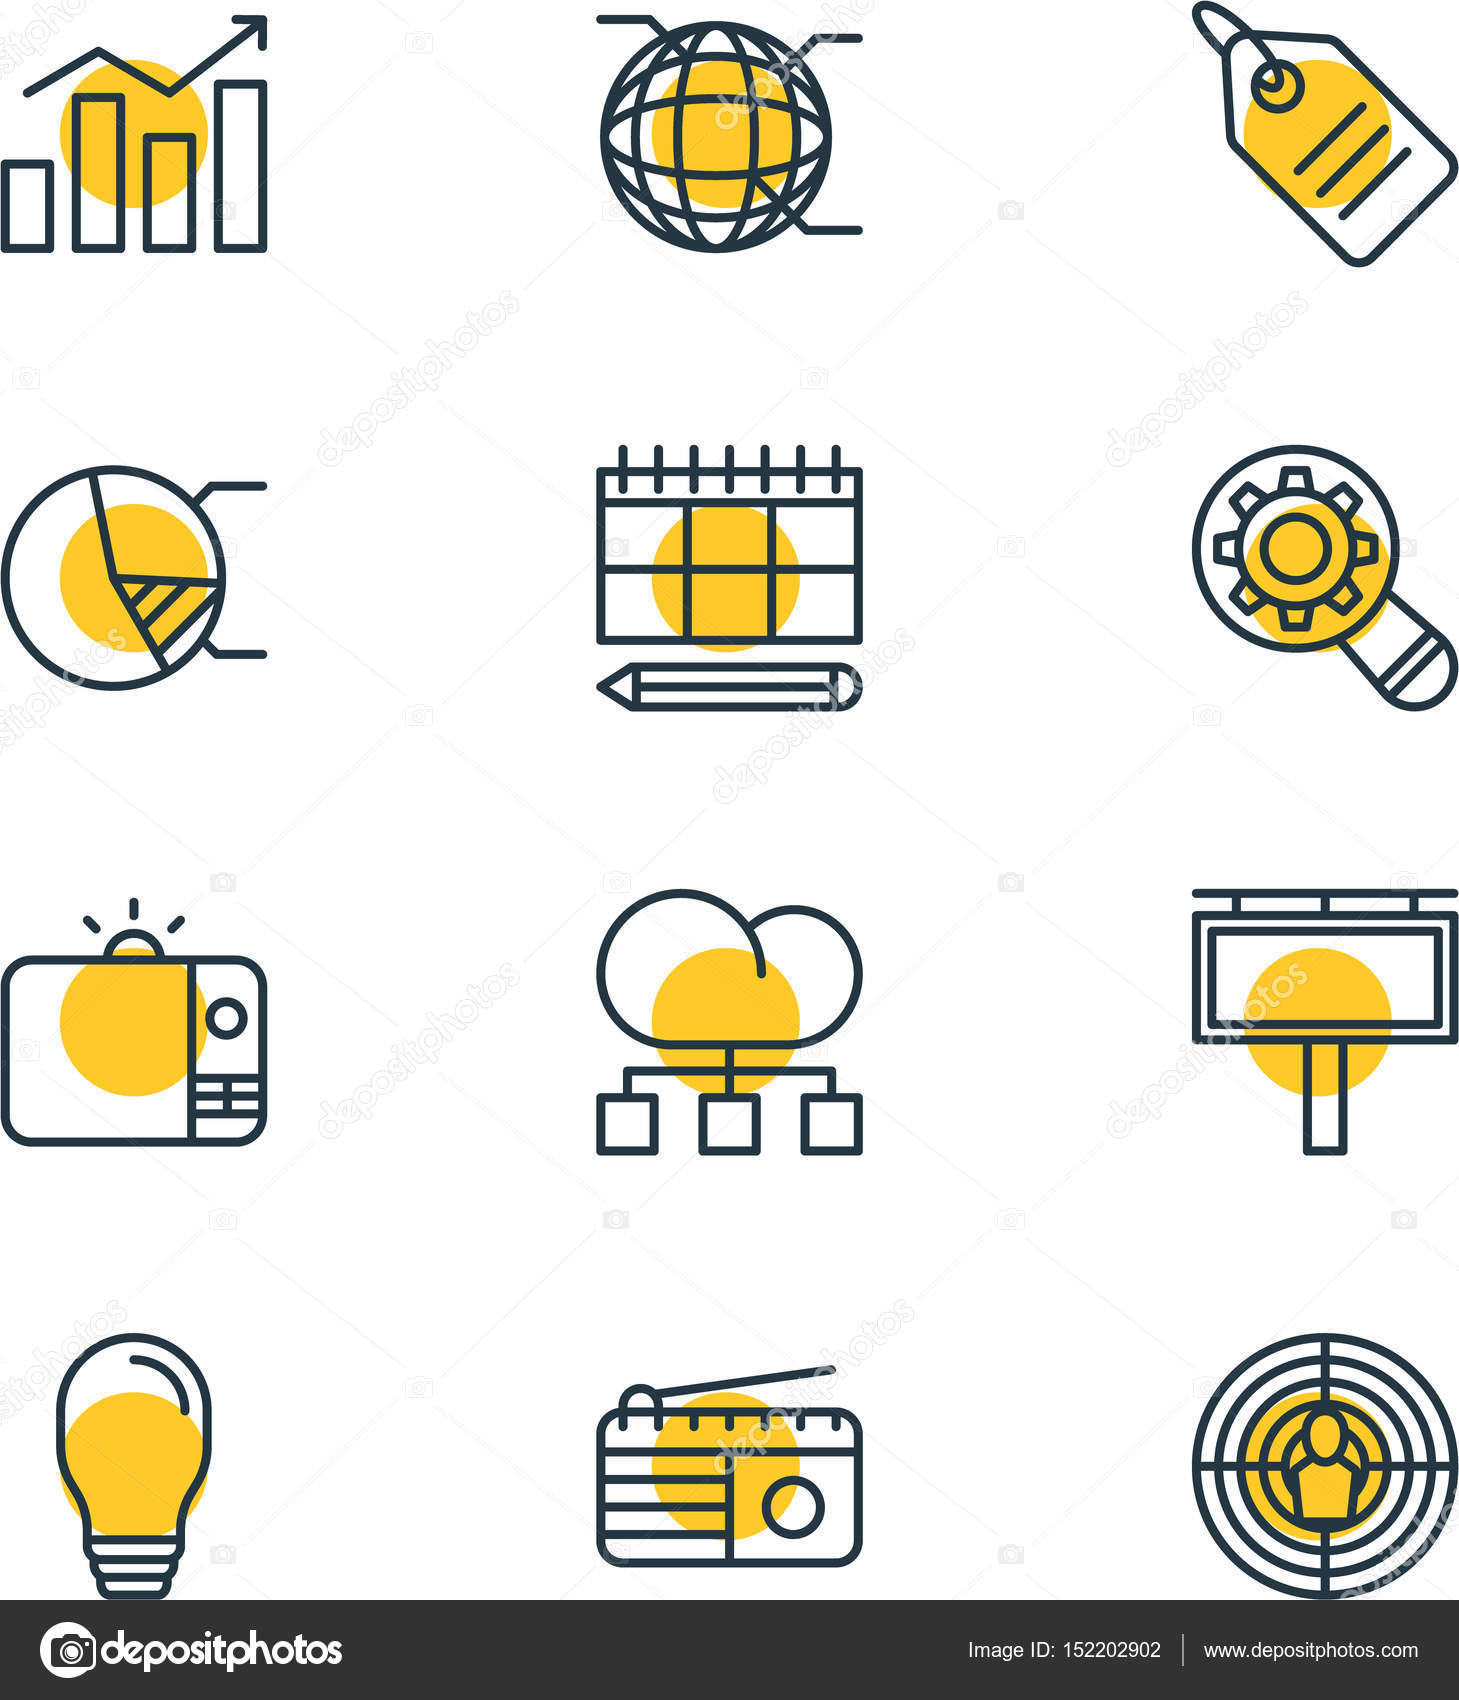 Vector illustration of 12 social icons editable pack of schedule vector illustration of 12 social icons editable pack of schedule circle diagram network ccuart Image collections